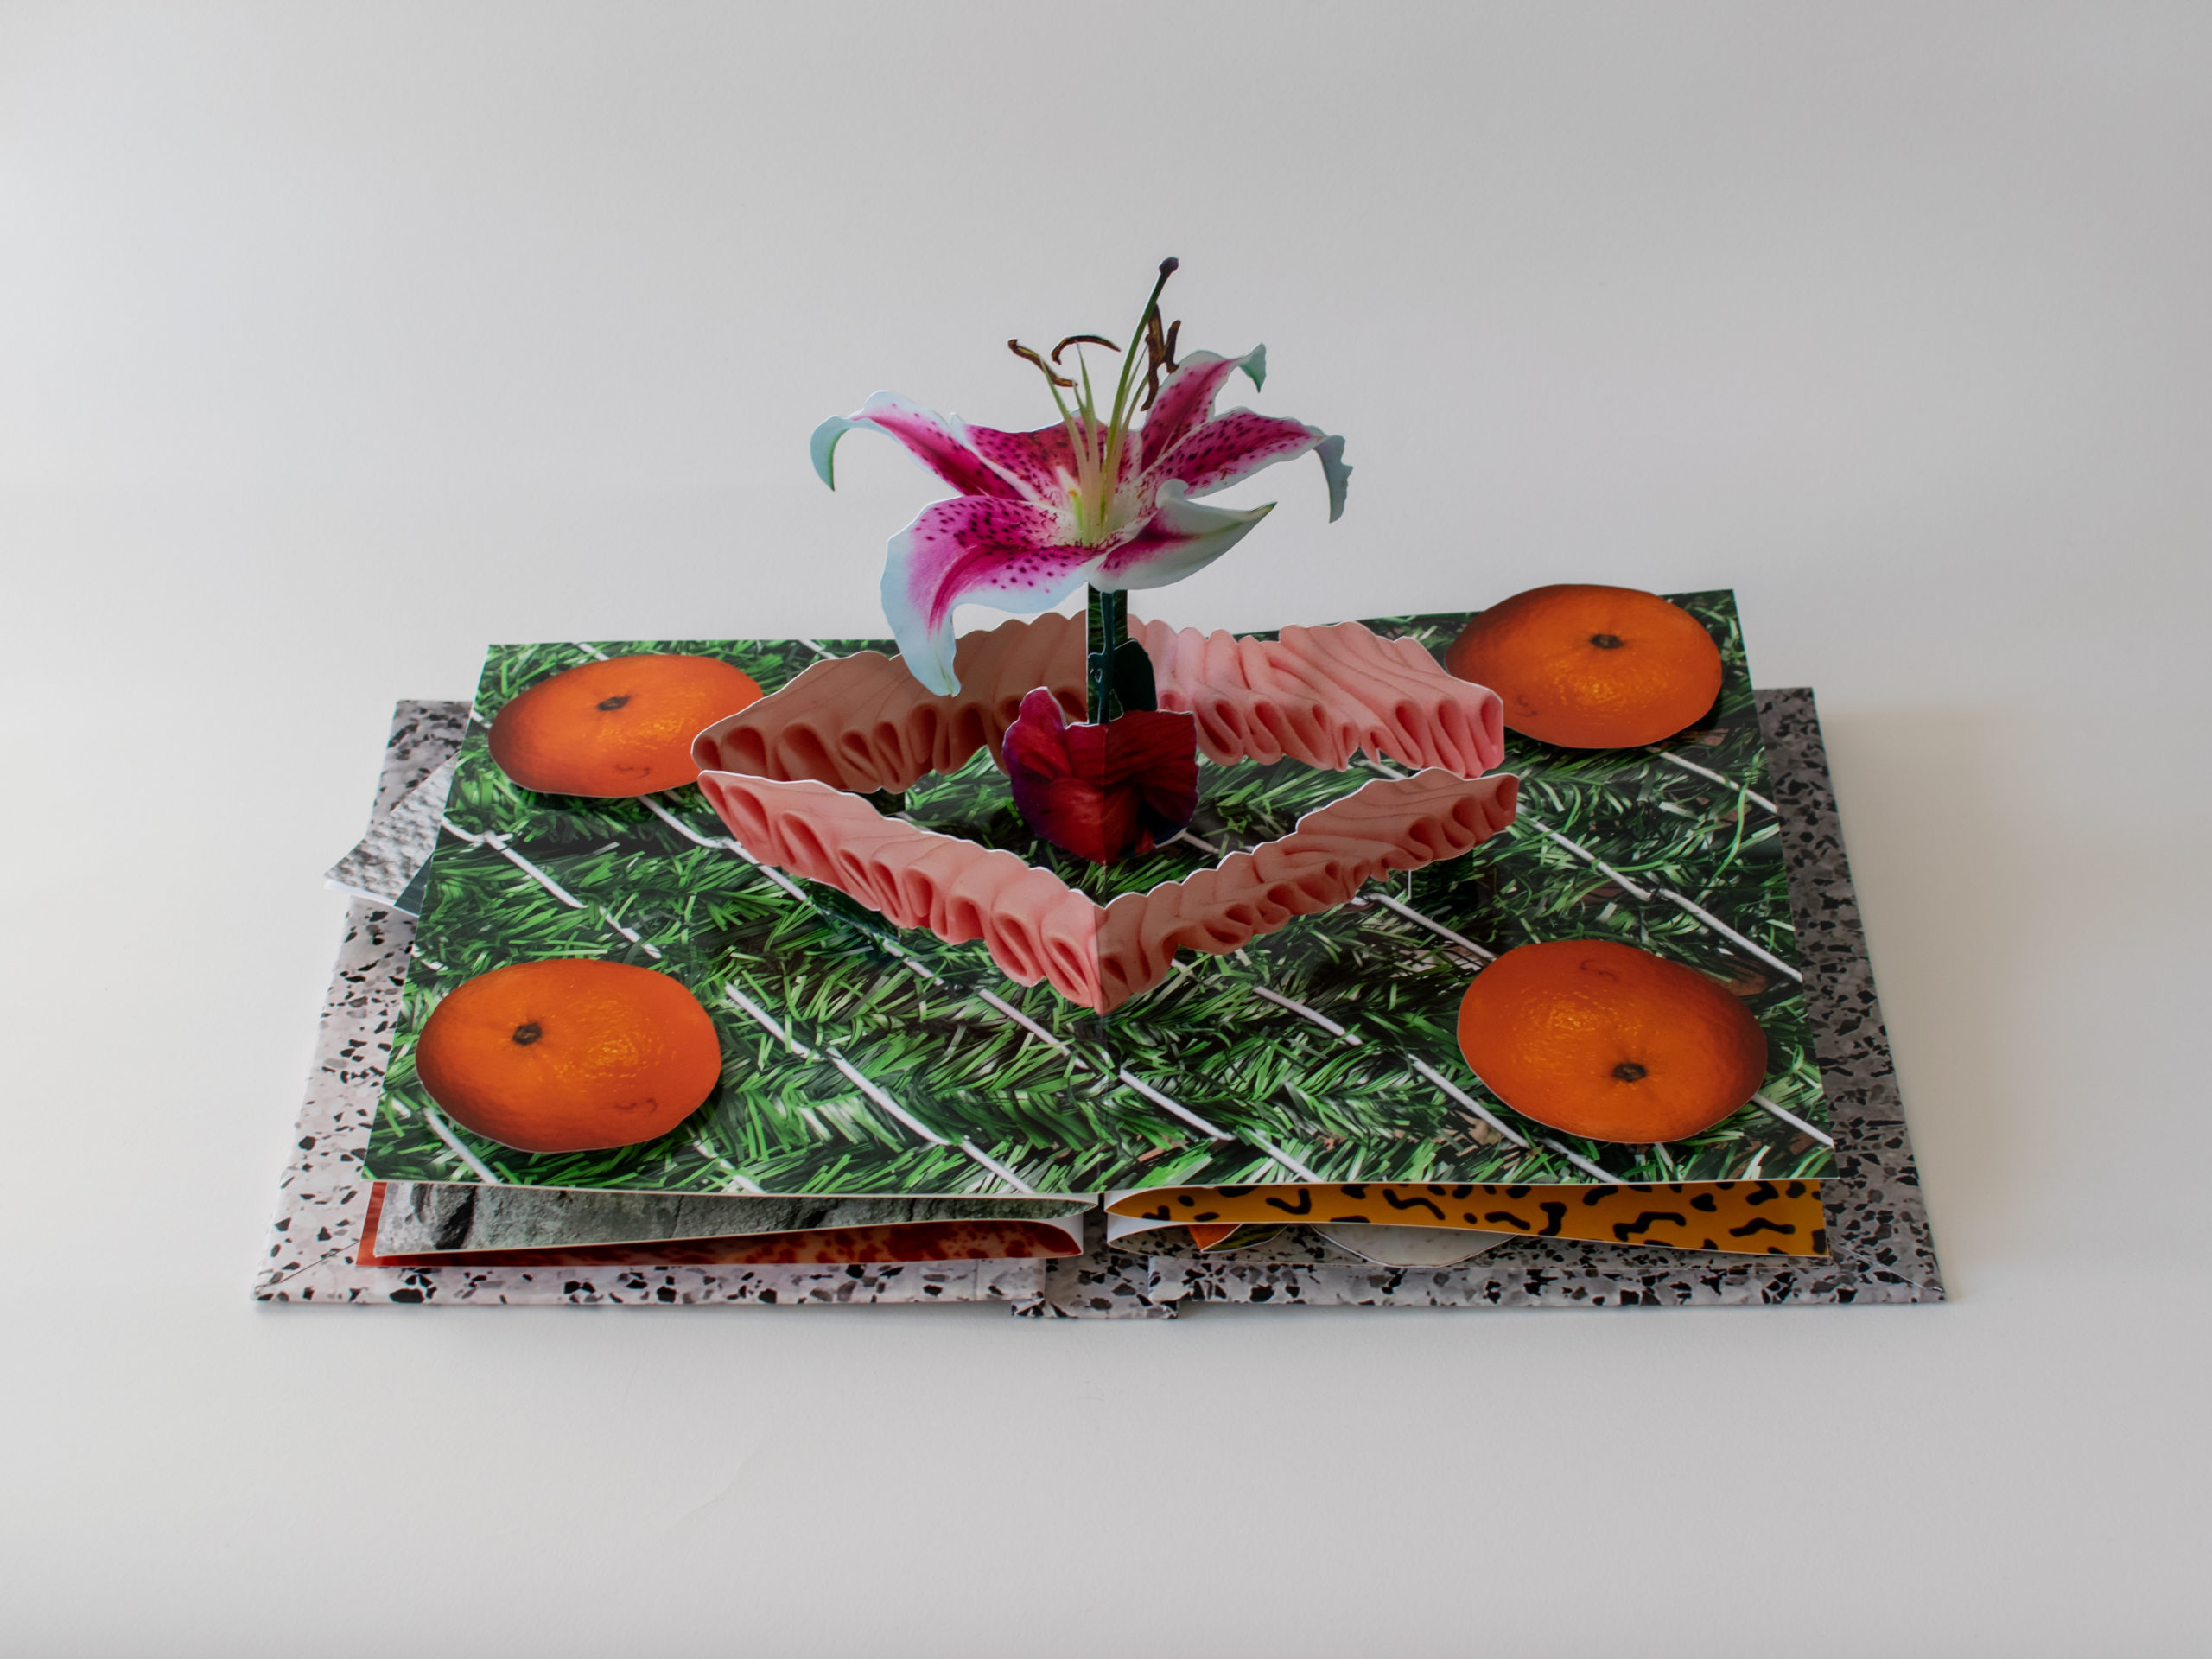 A pop up book featuring four oranges cut out of paper surrounding a square of two shades of pink and a lily emerging from the center